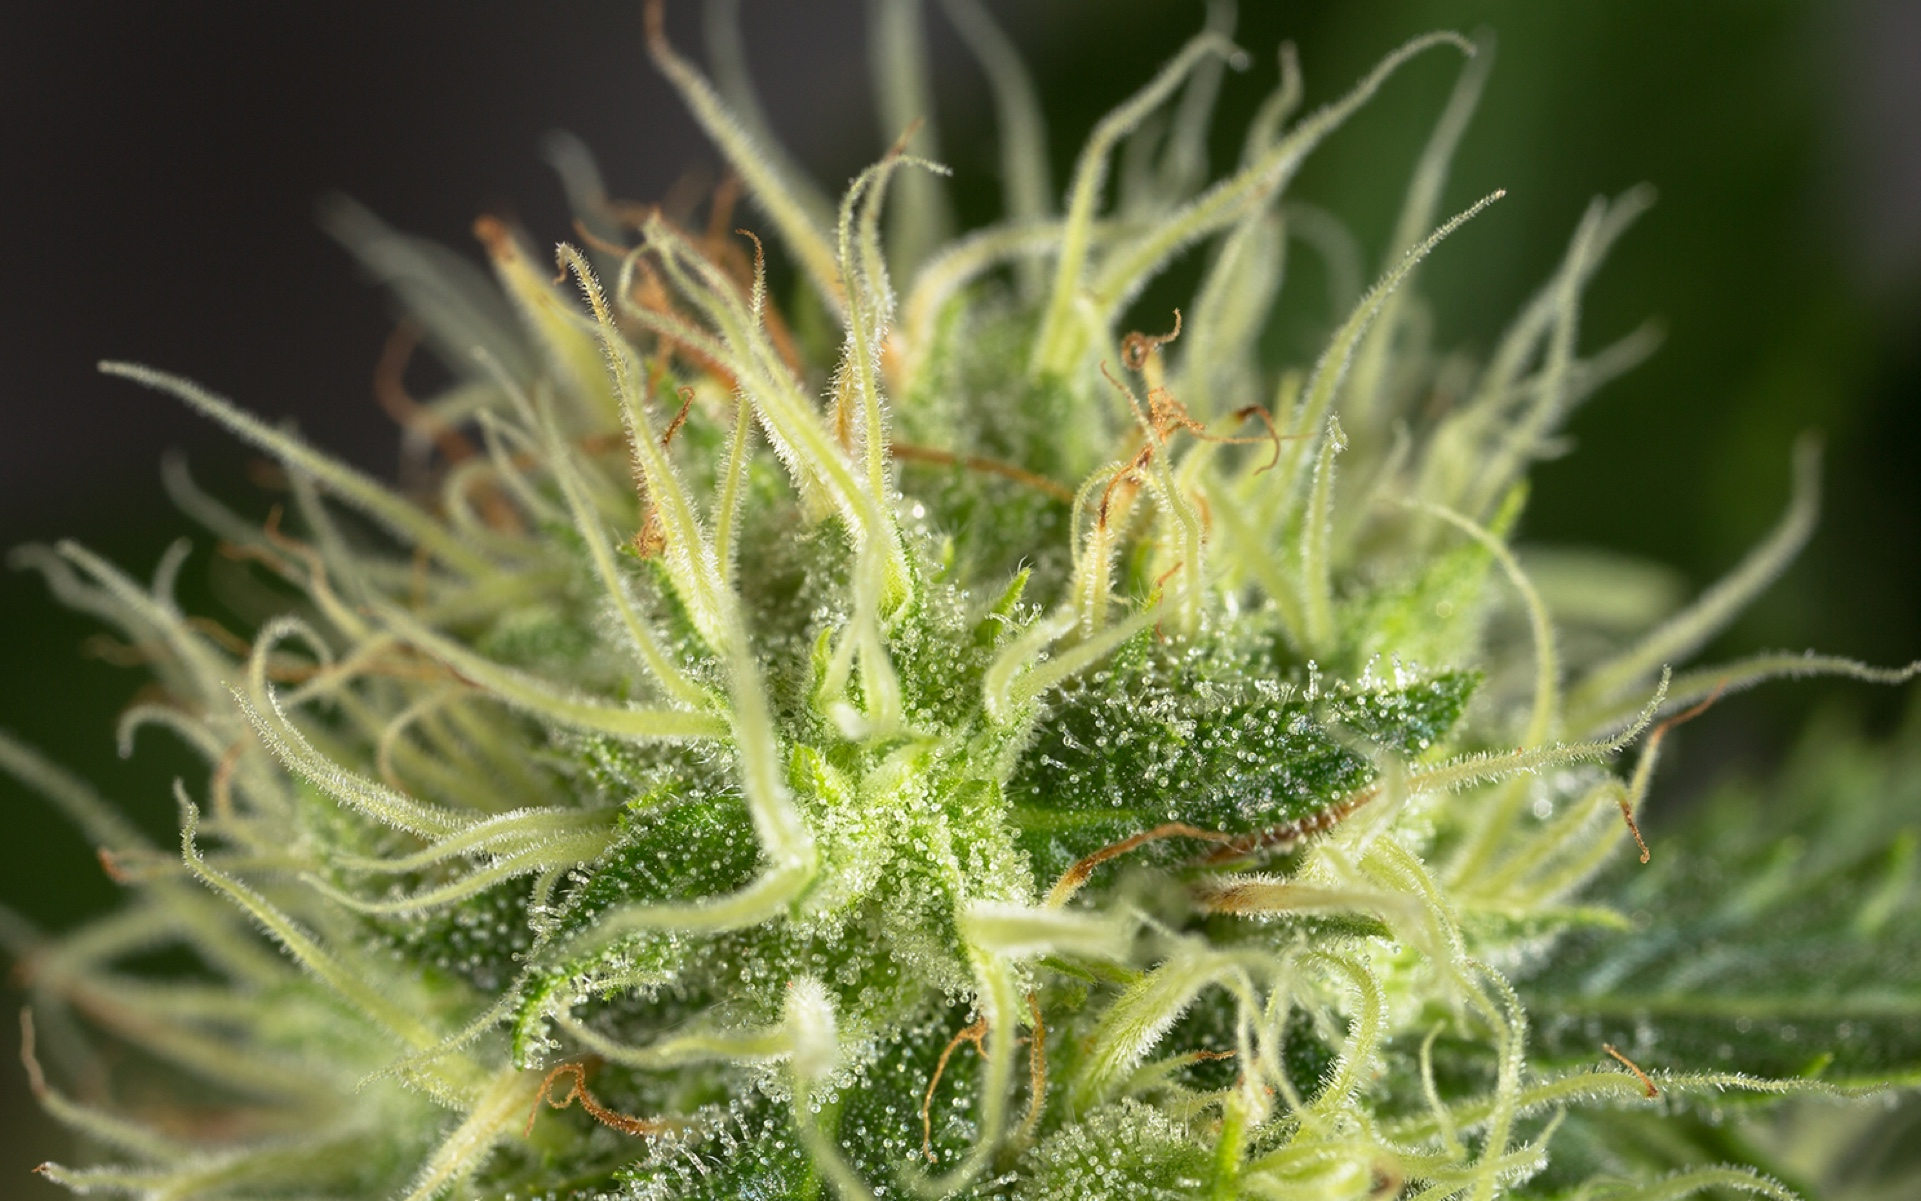 Tips for Growing OG Kush Cannabis